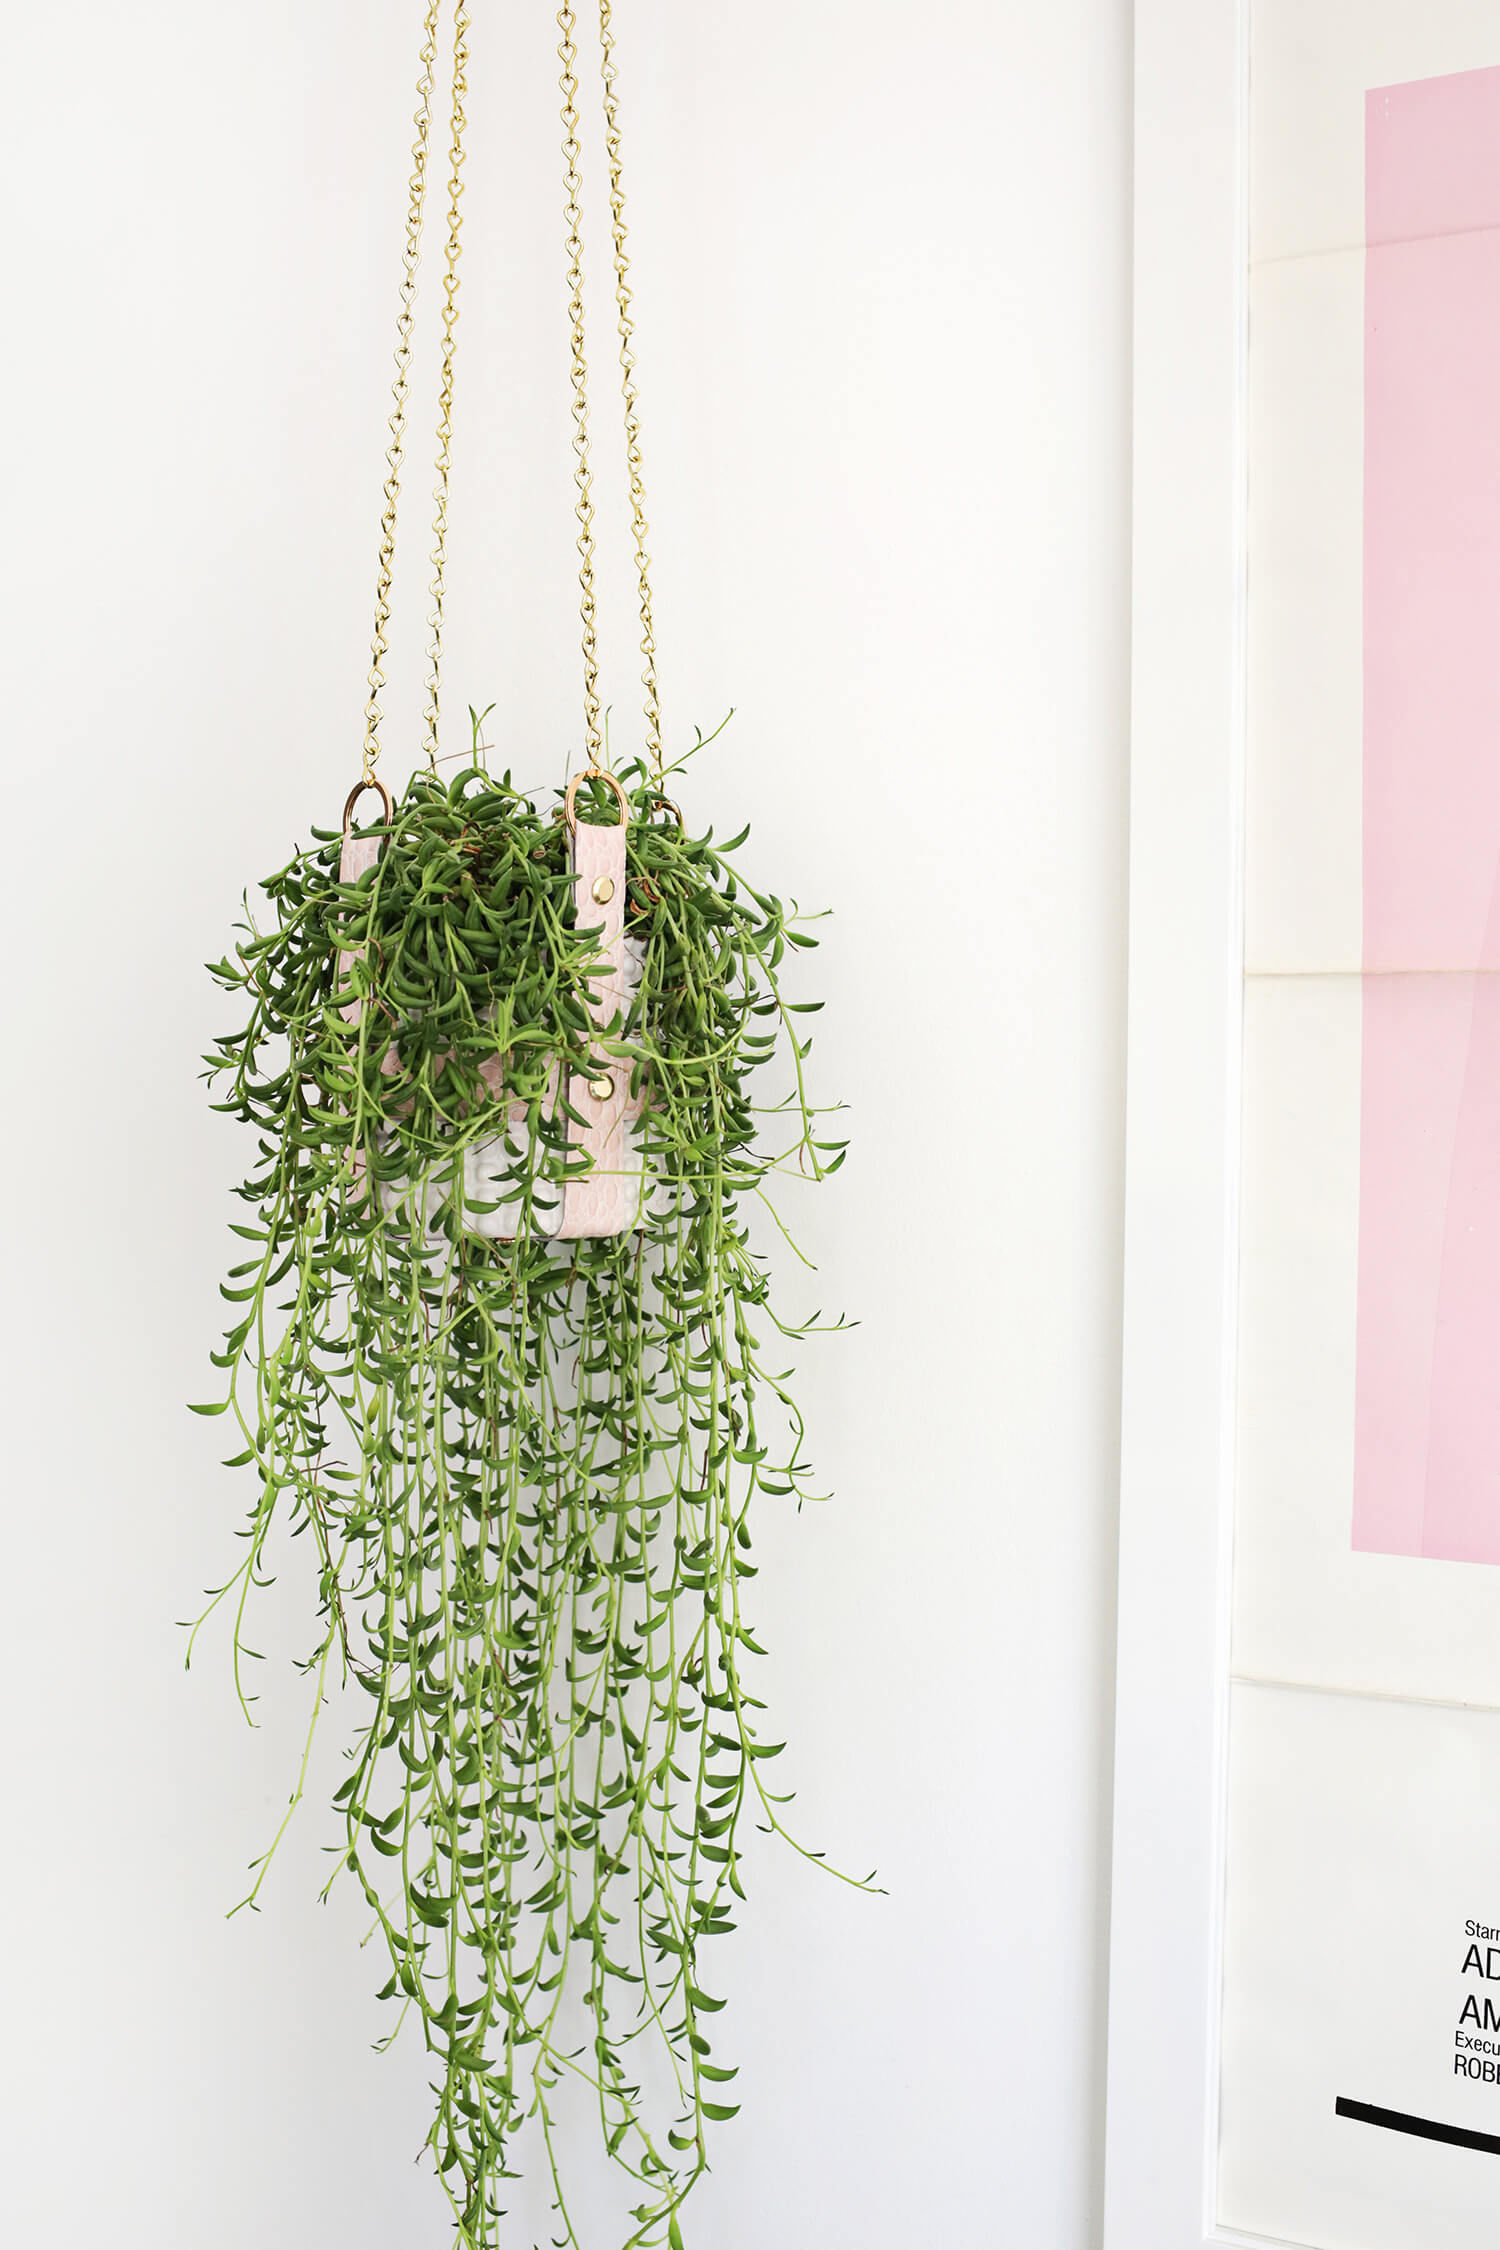 7 Diy Hanging Planters For That Empty Corner You Don T Know What To Do With